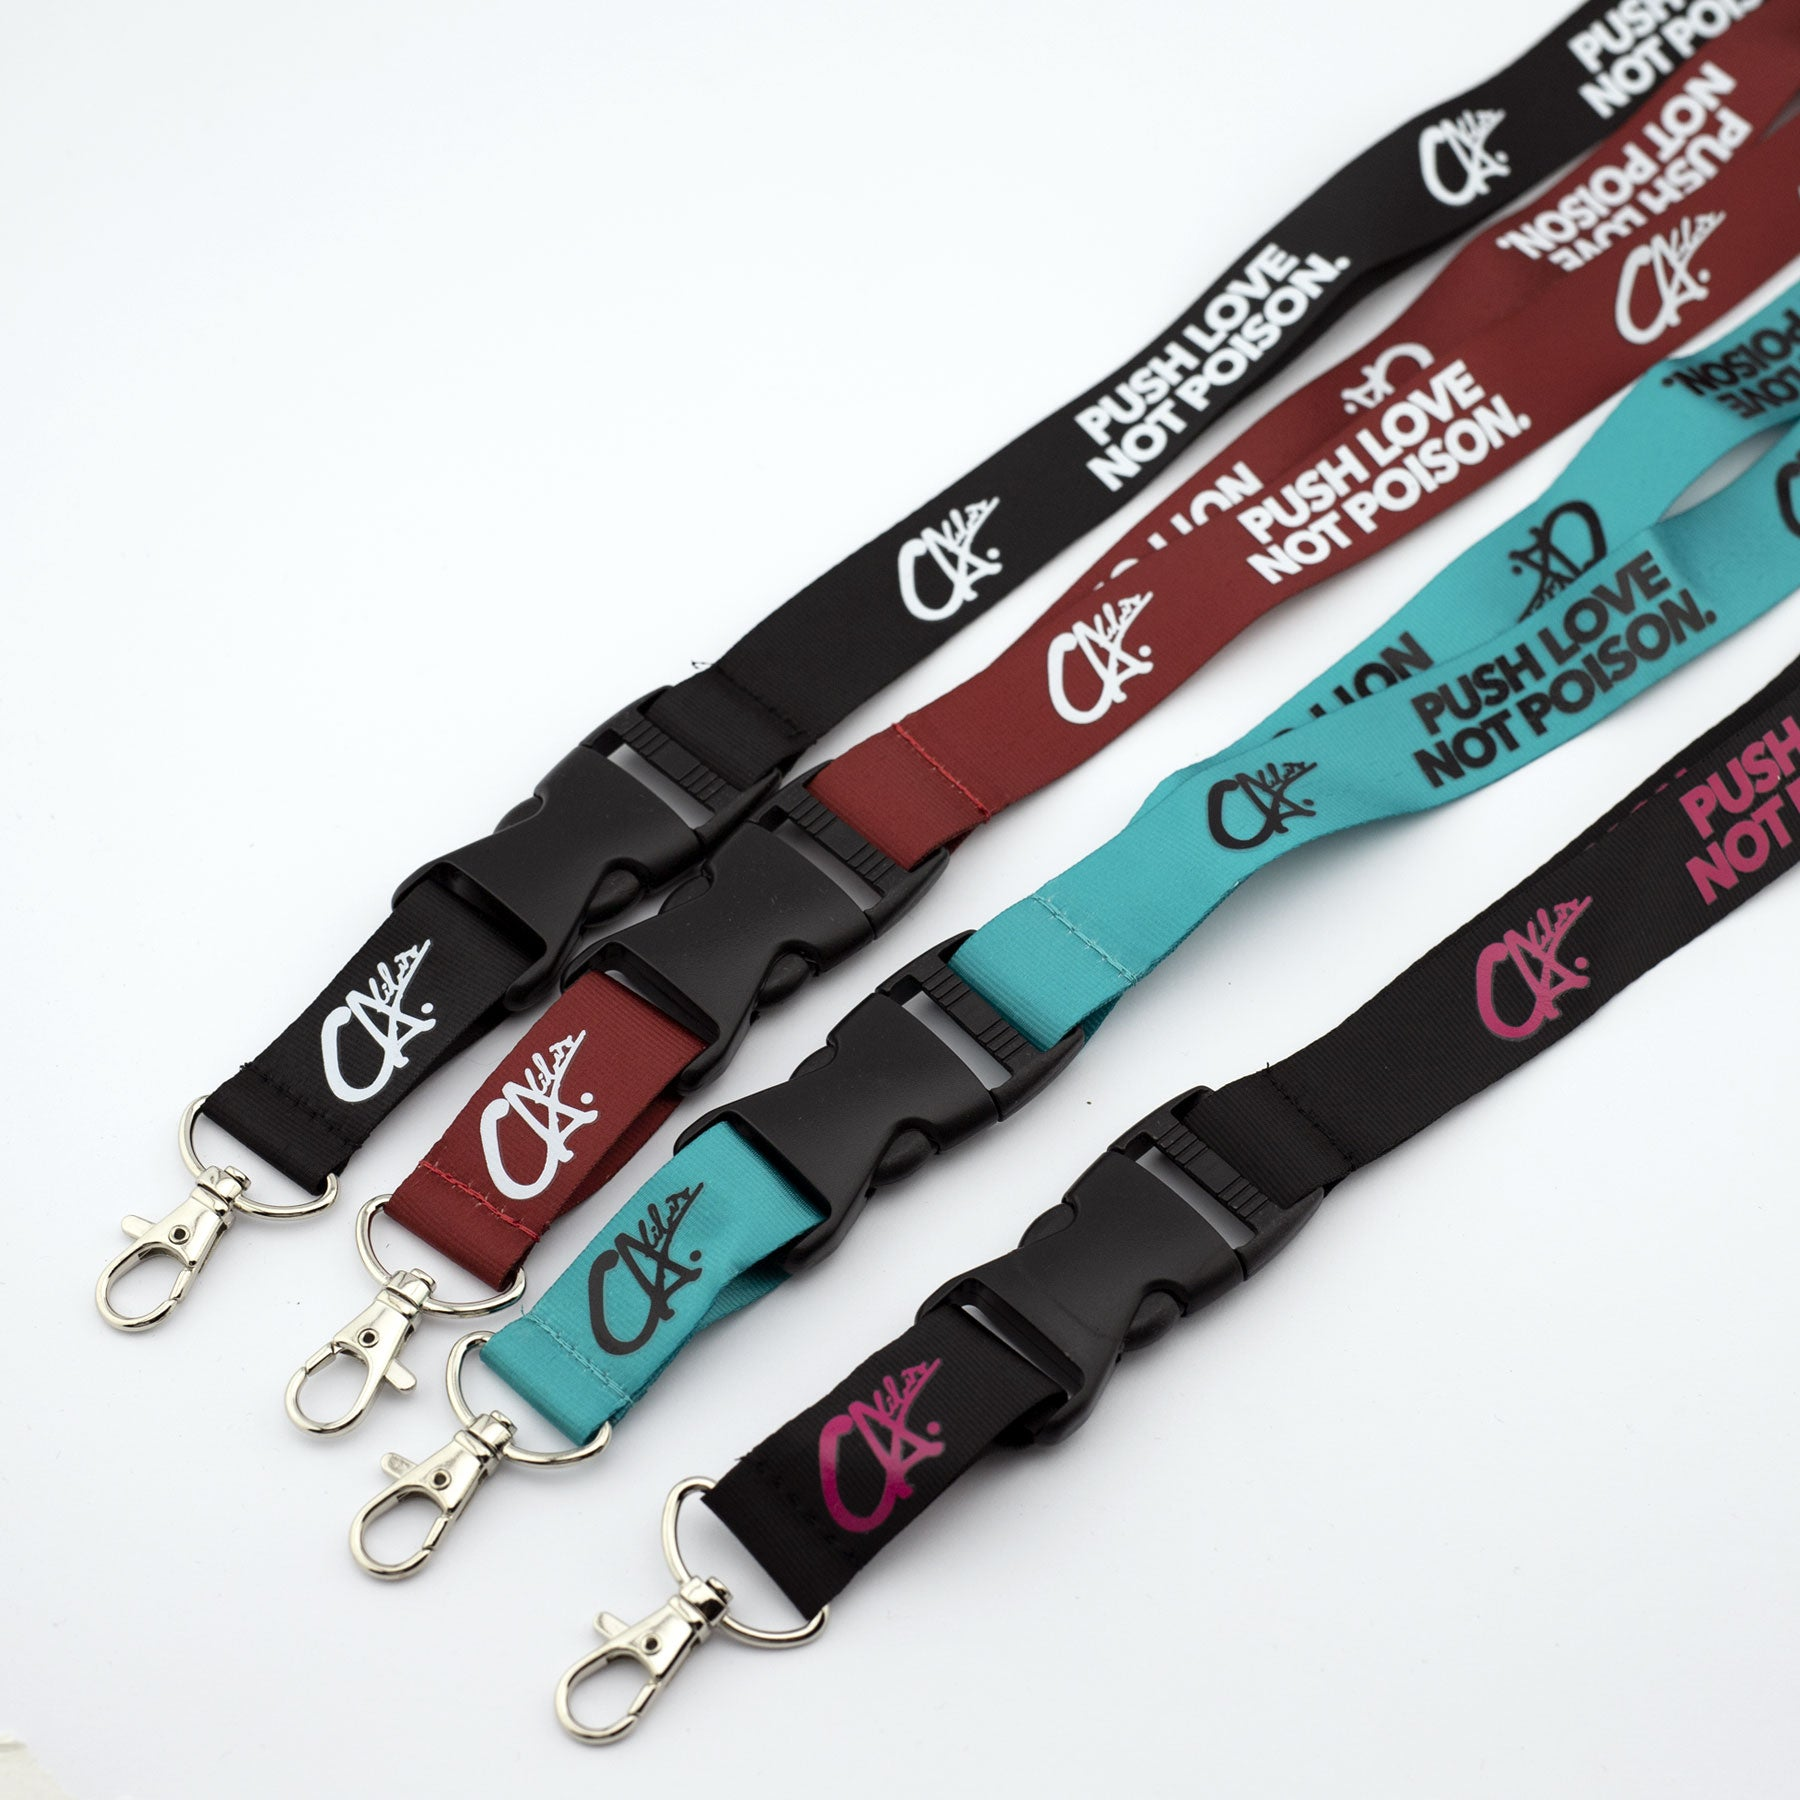 Lanyards by Calibis Clothing